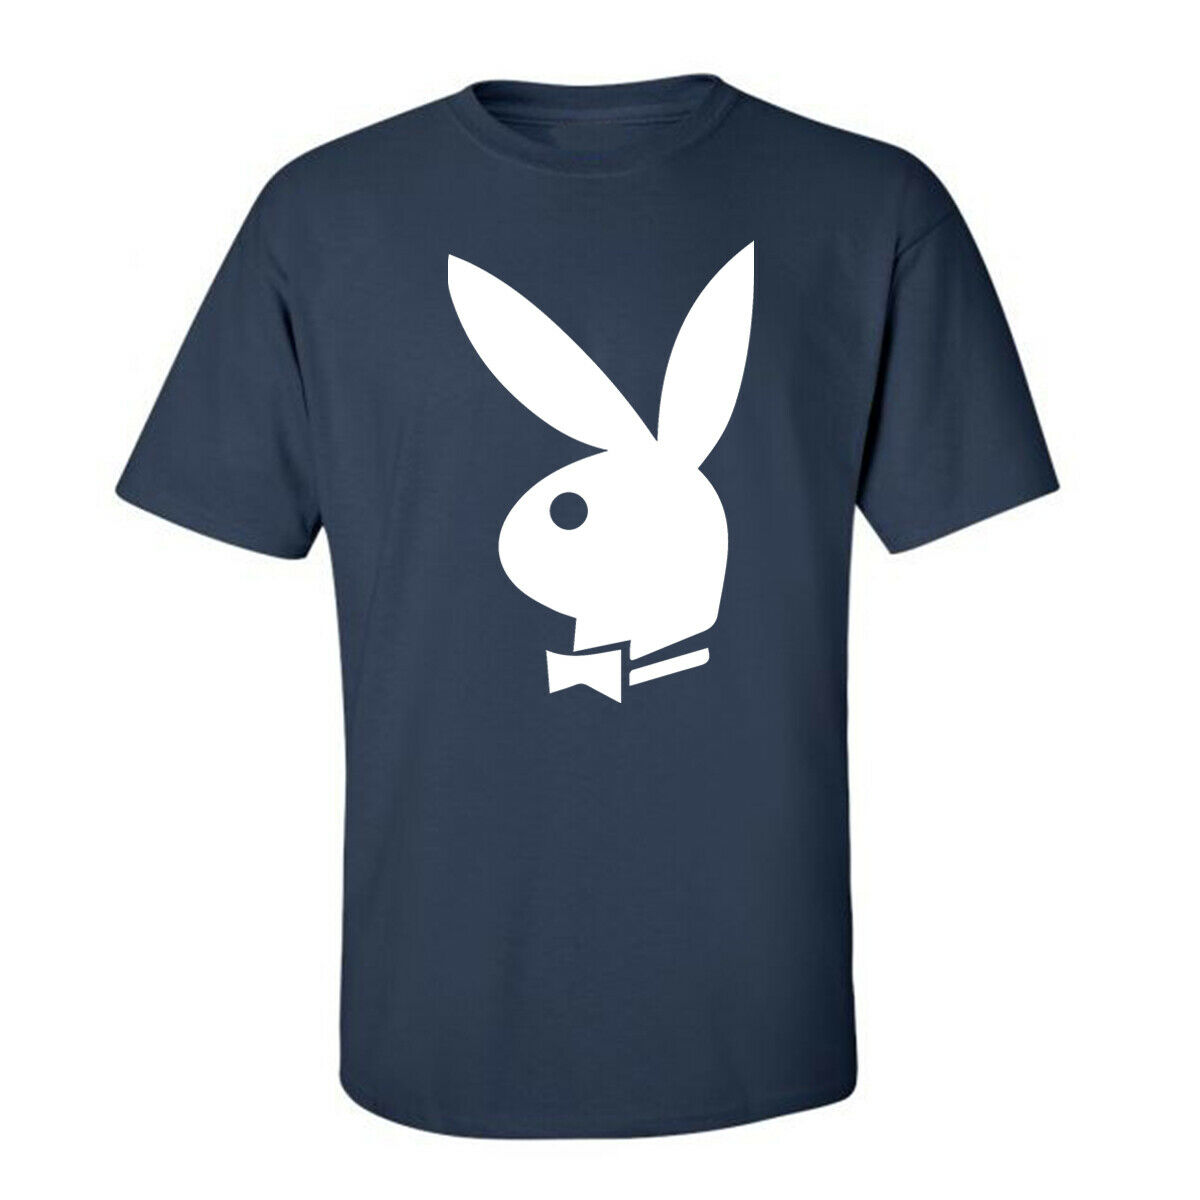 Playboy, Bunny Mens Tees Graphic Funny Generic Novelty Unisex T-Shirt